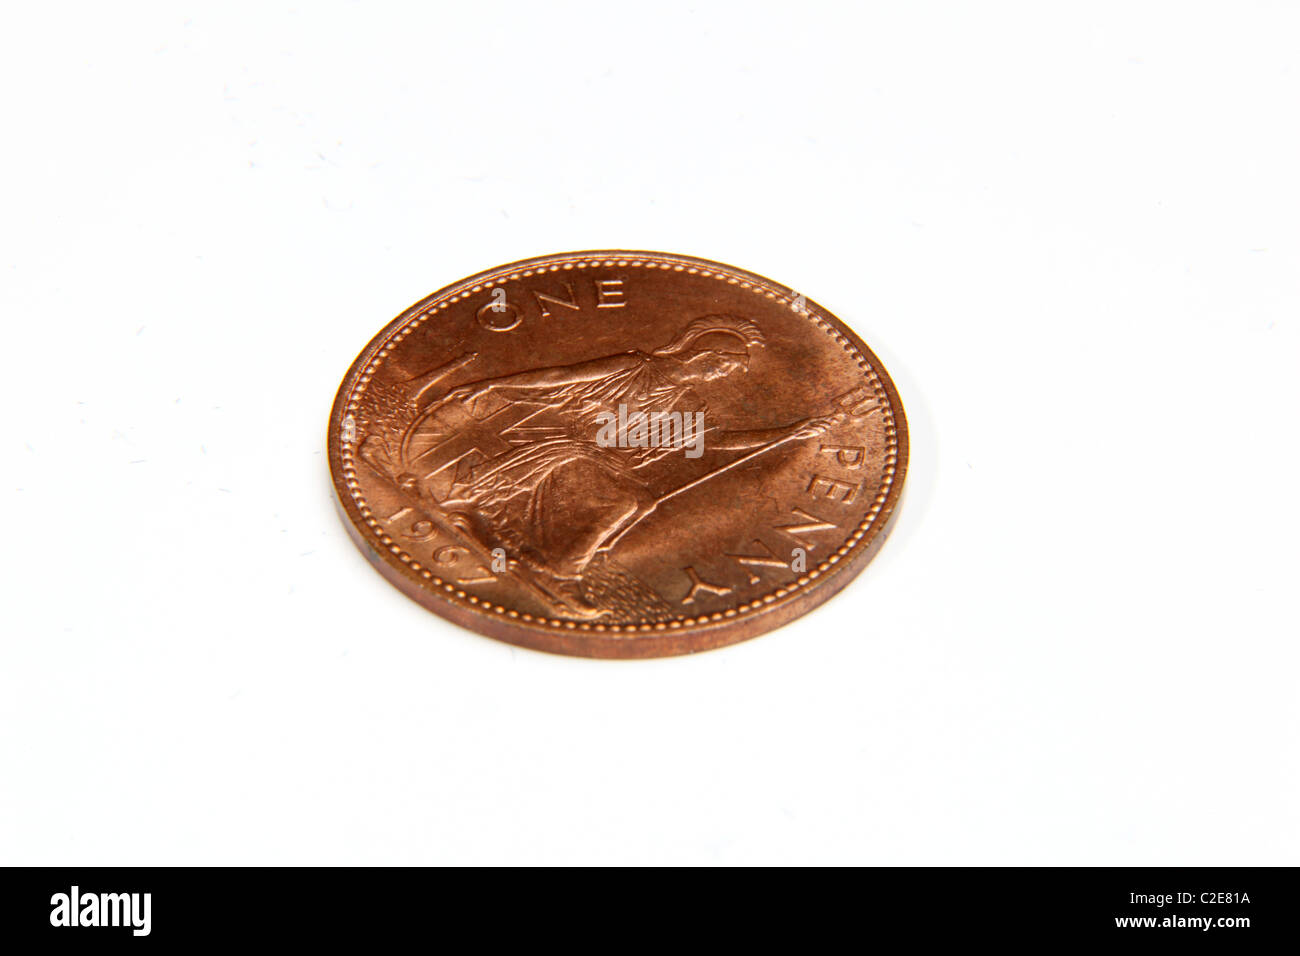 1d penny old coin, pre-decimal UK currency. - Stock Image